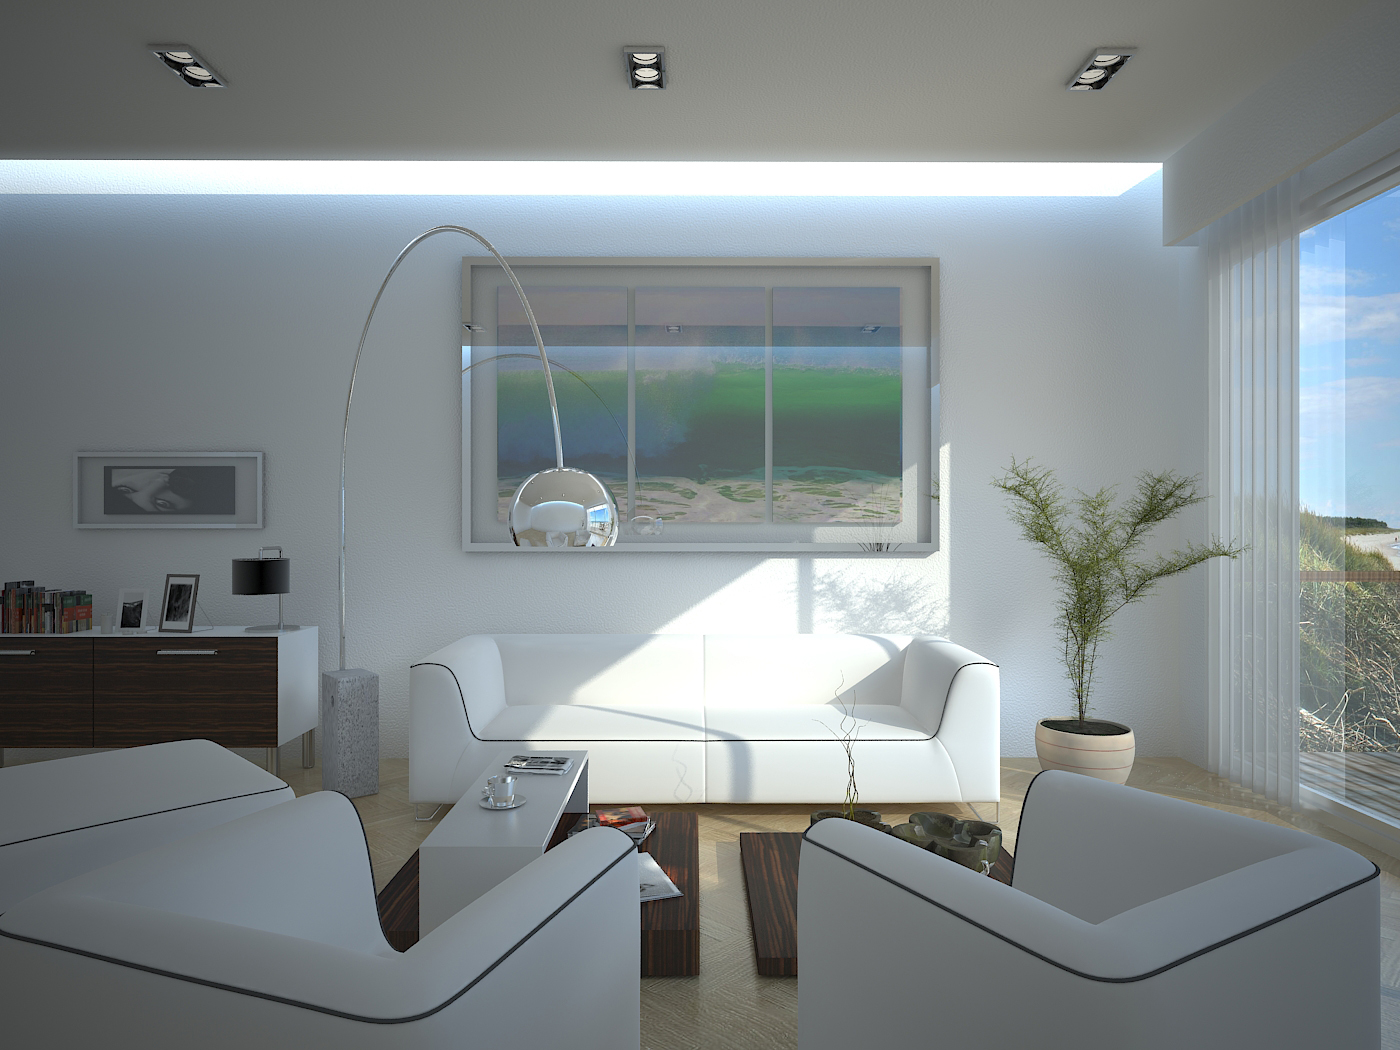 New beach house interior 2nd by outboxdesign on deviantart for Interior designs for beach houses